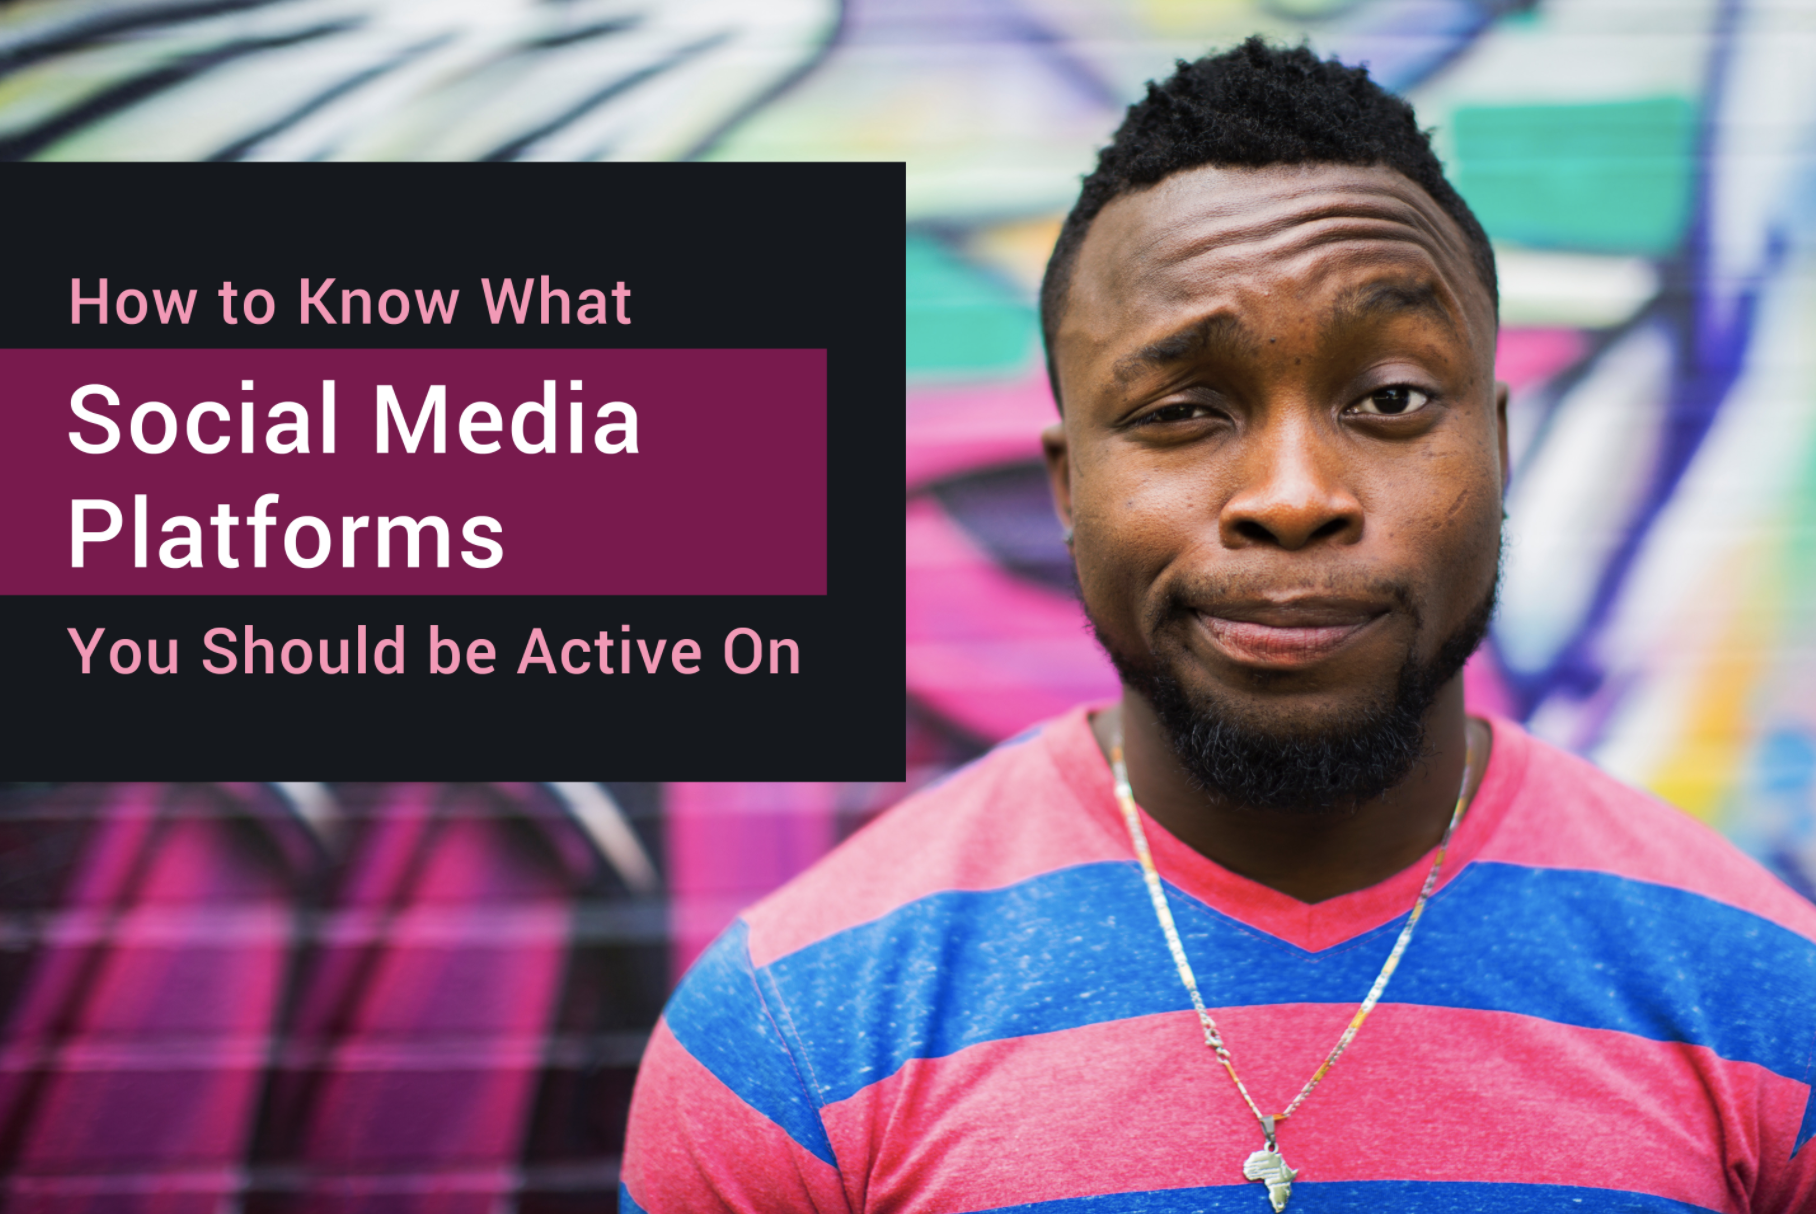 How to Know What Social Media Platforms You Should be Active On